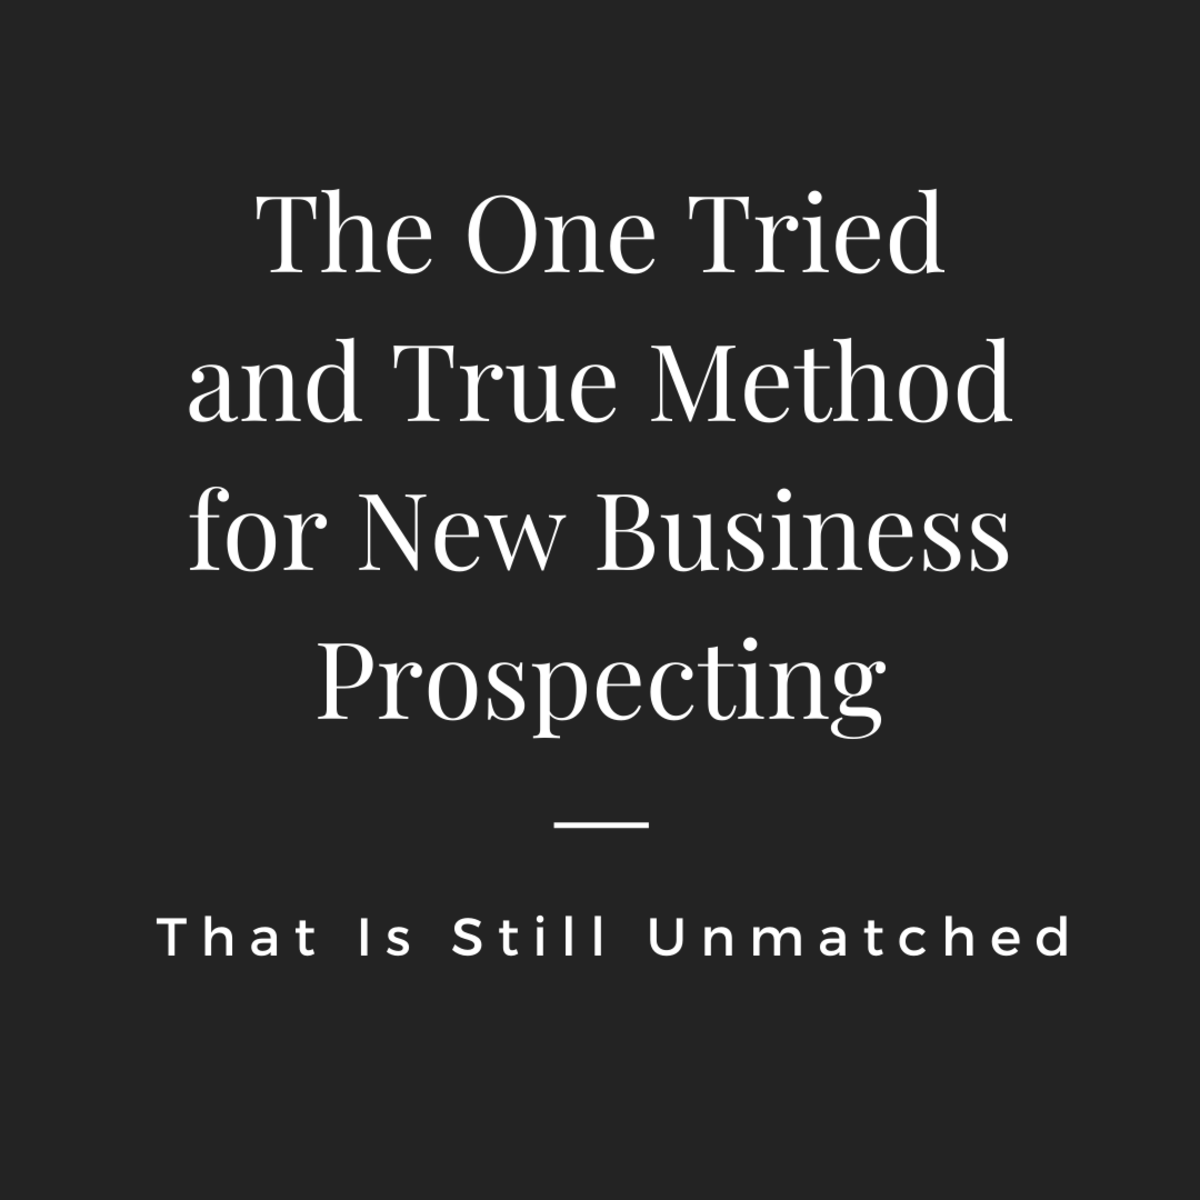 Find out what method is most effective!